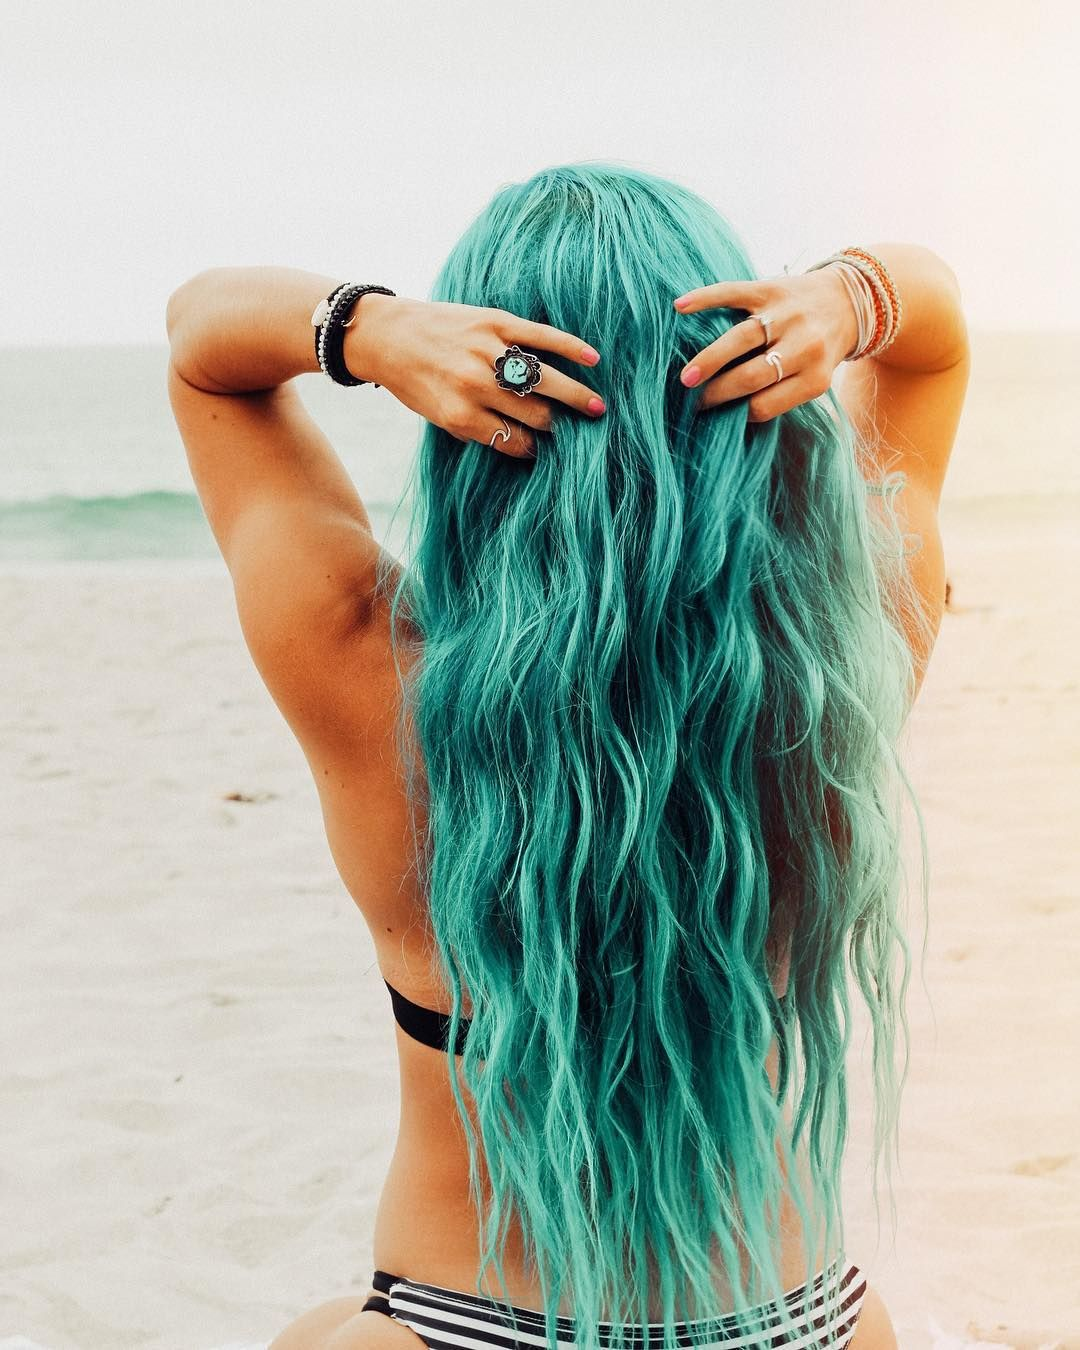 When your hair matches the ocean x ladyscorpio l o c k s